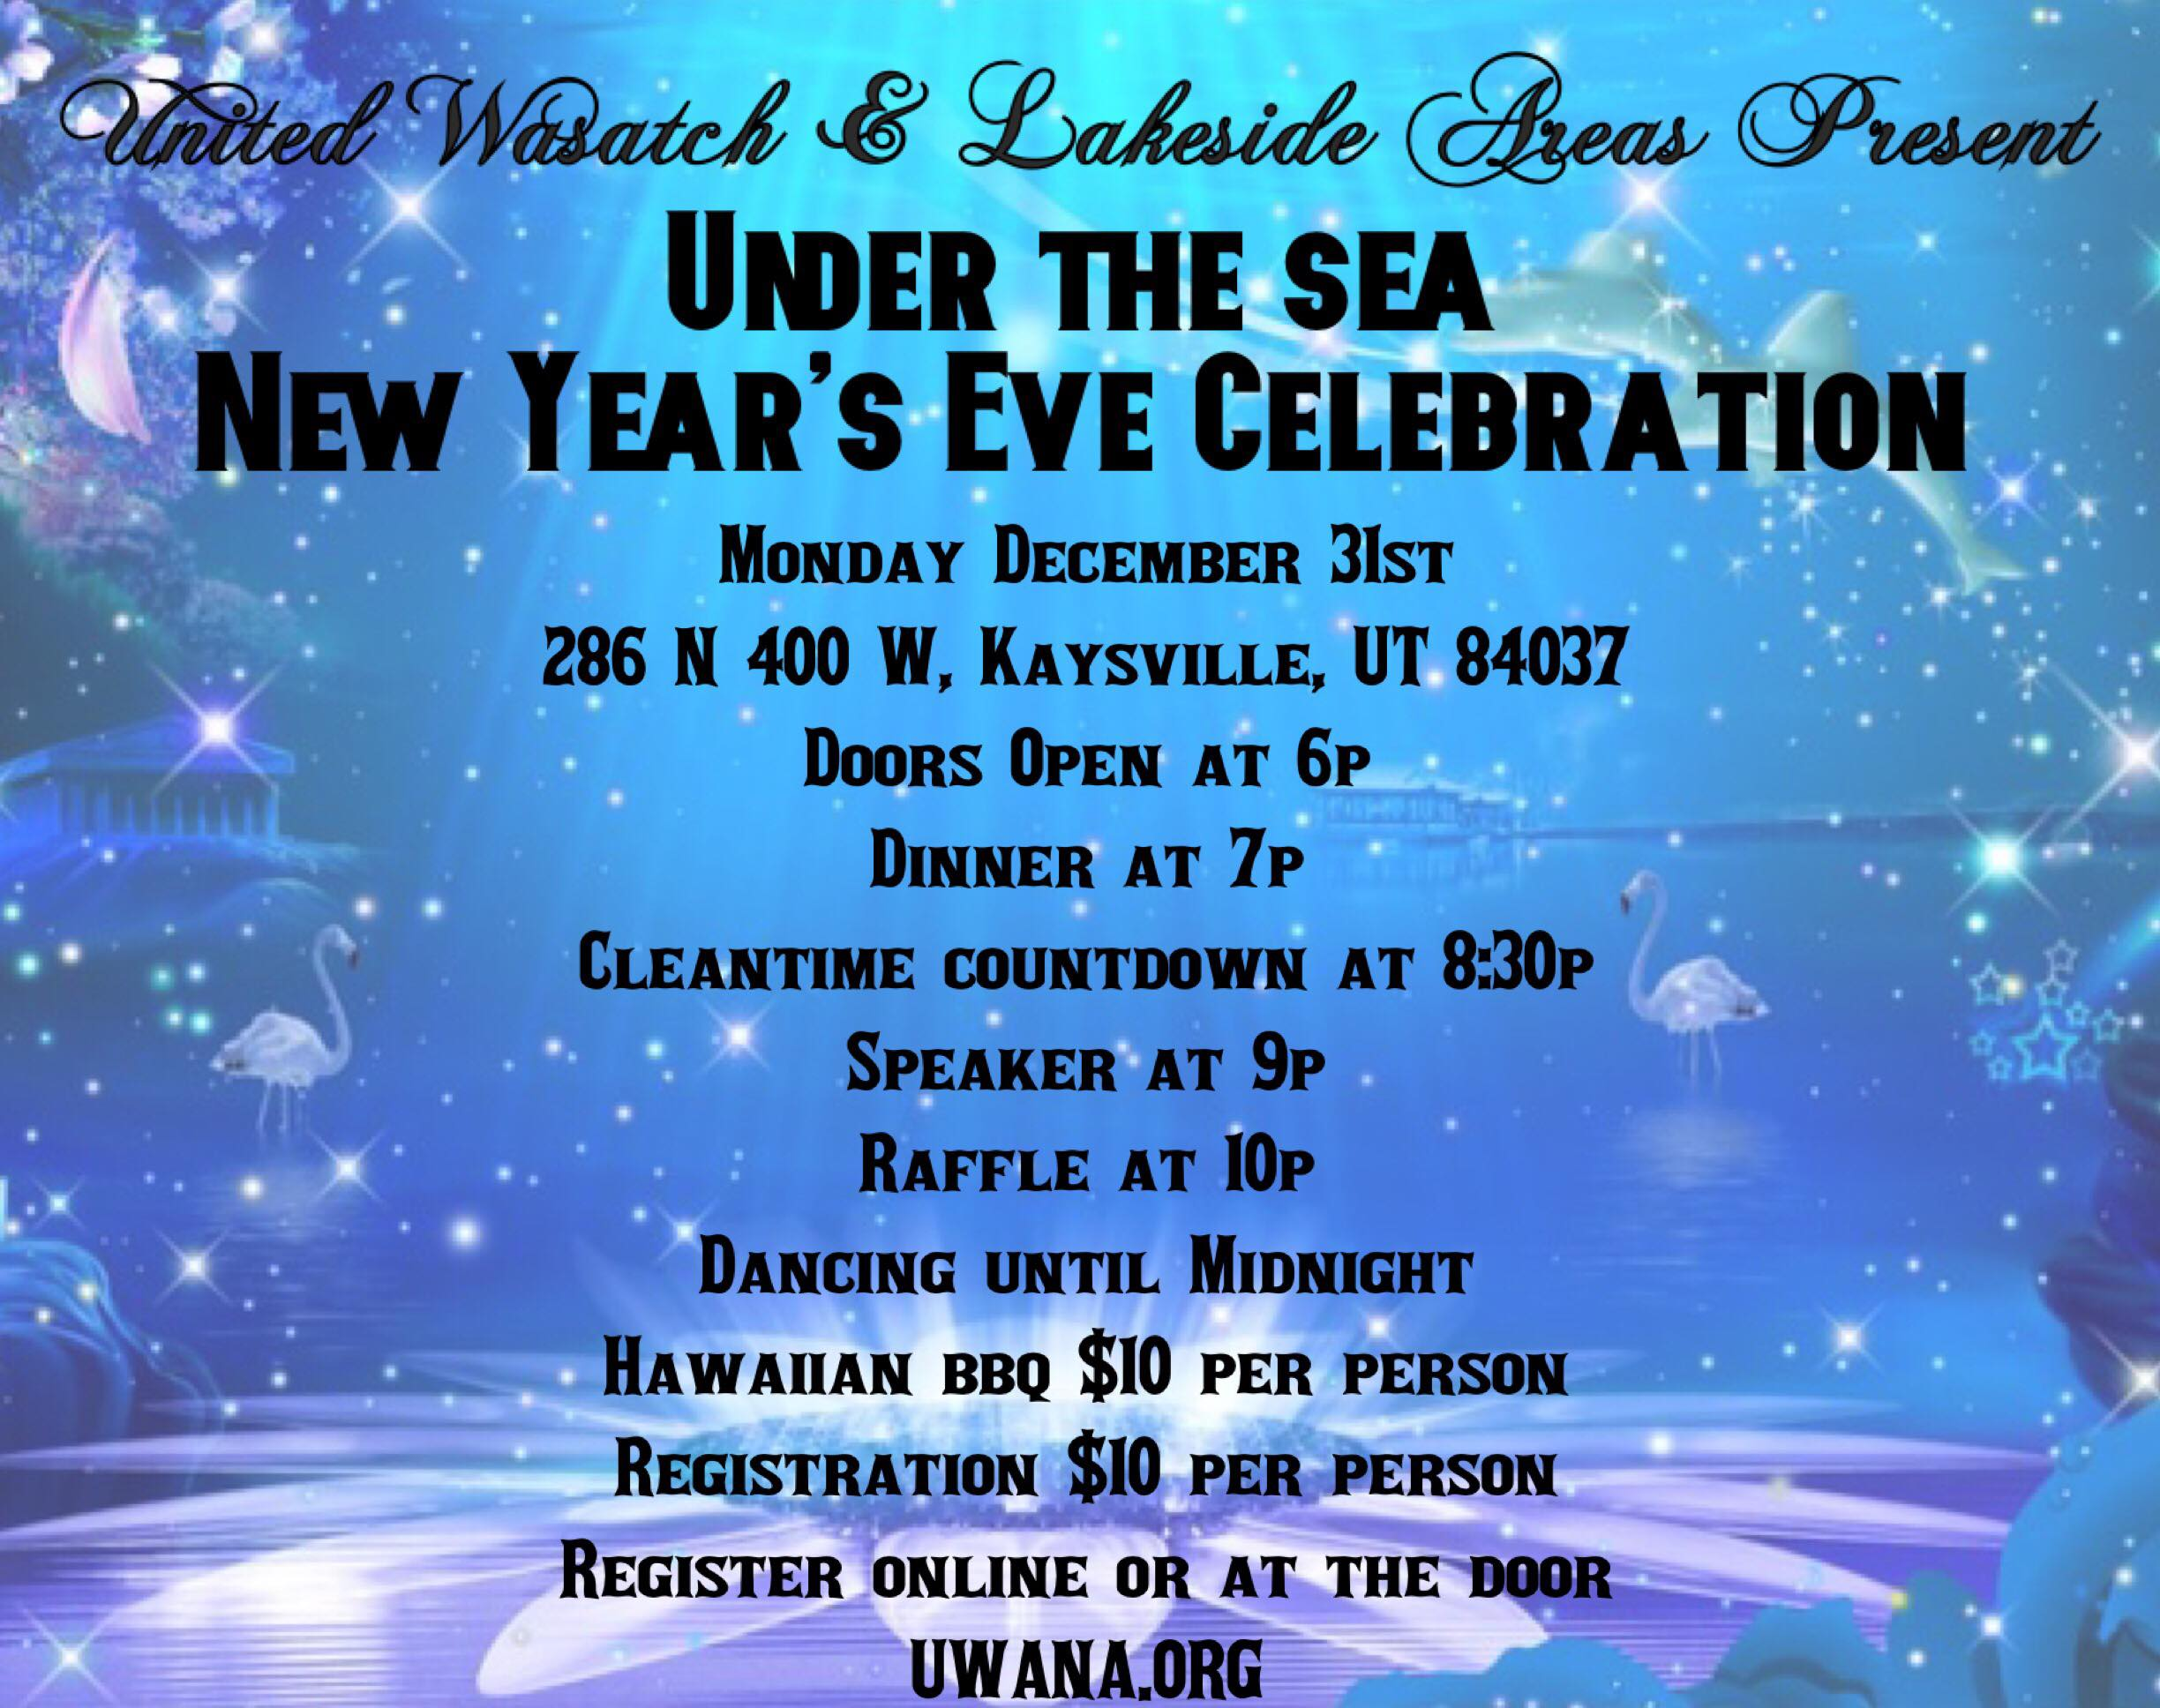 New Year's Eve Dance flyer